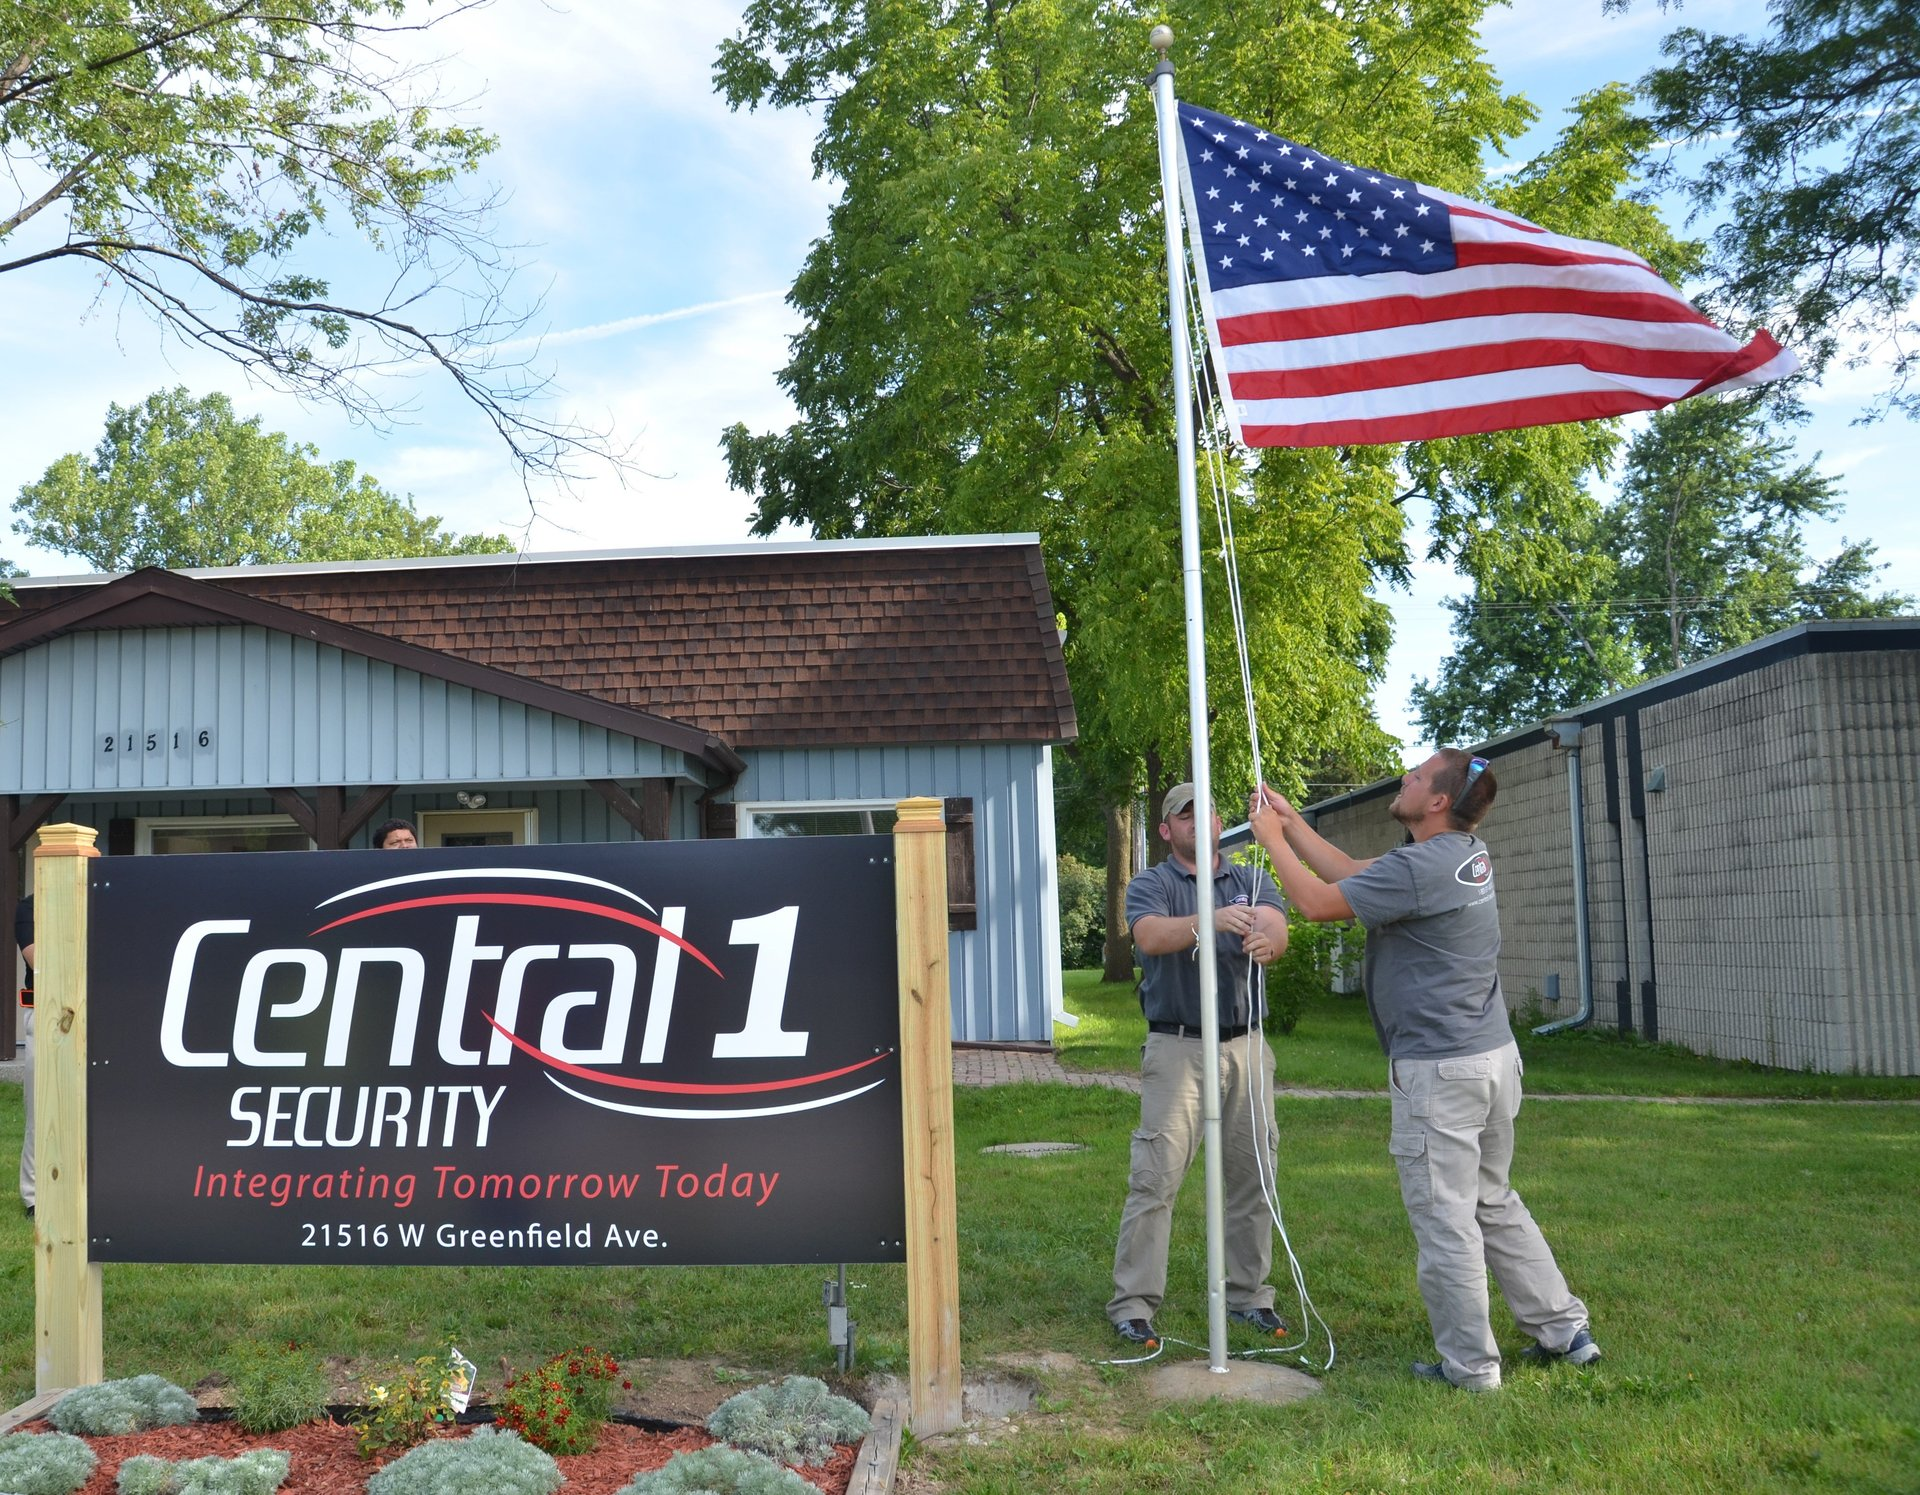 Central 1 Security 2016 WIESA Company of the Year - Security Systems